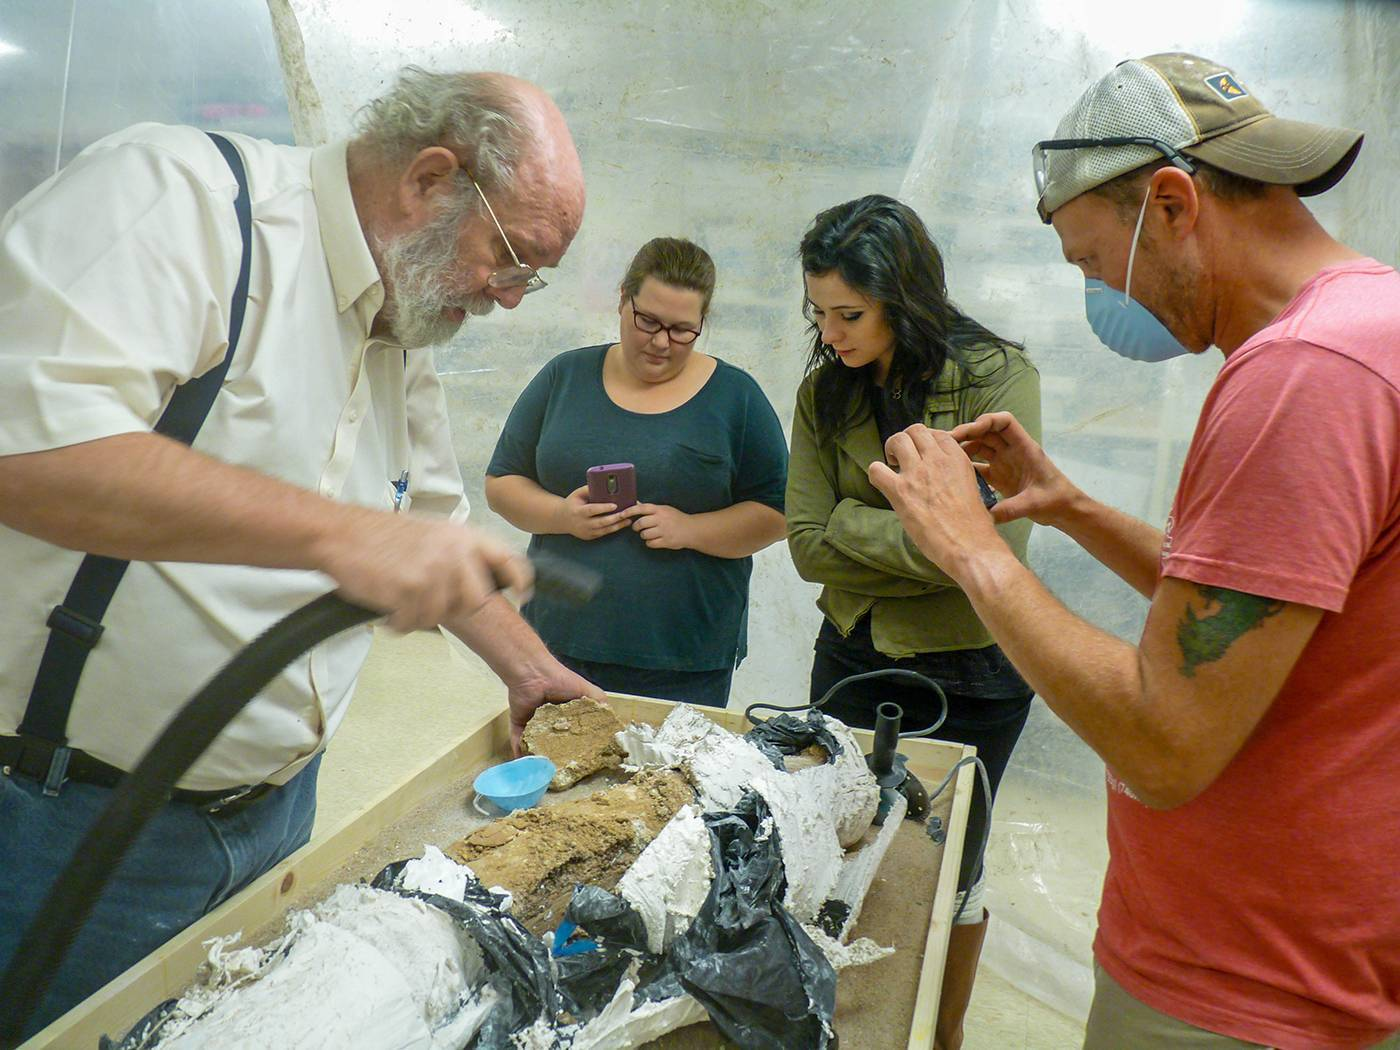 WSU students and professor work to excavate a mammoth tusk discovered in Cunningham, Kansas